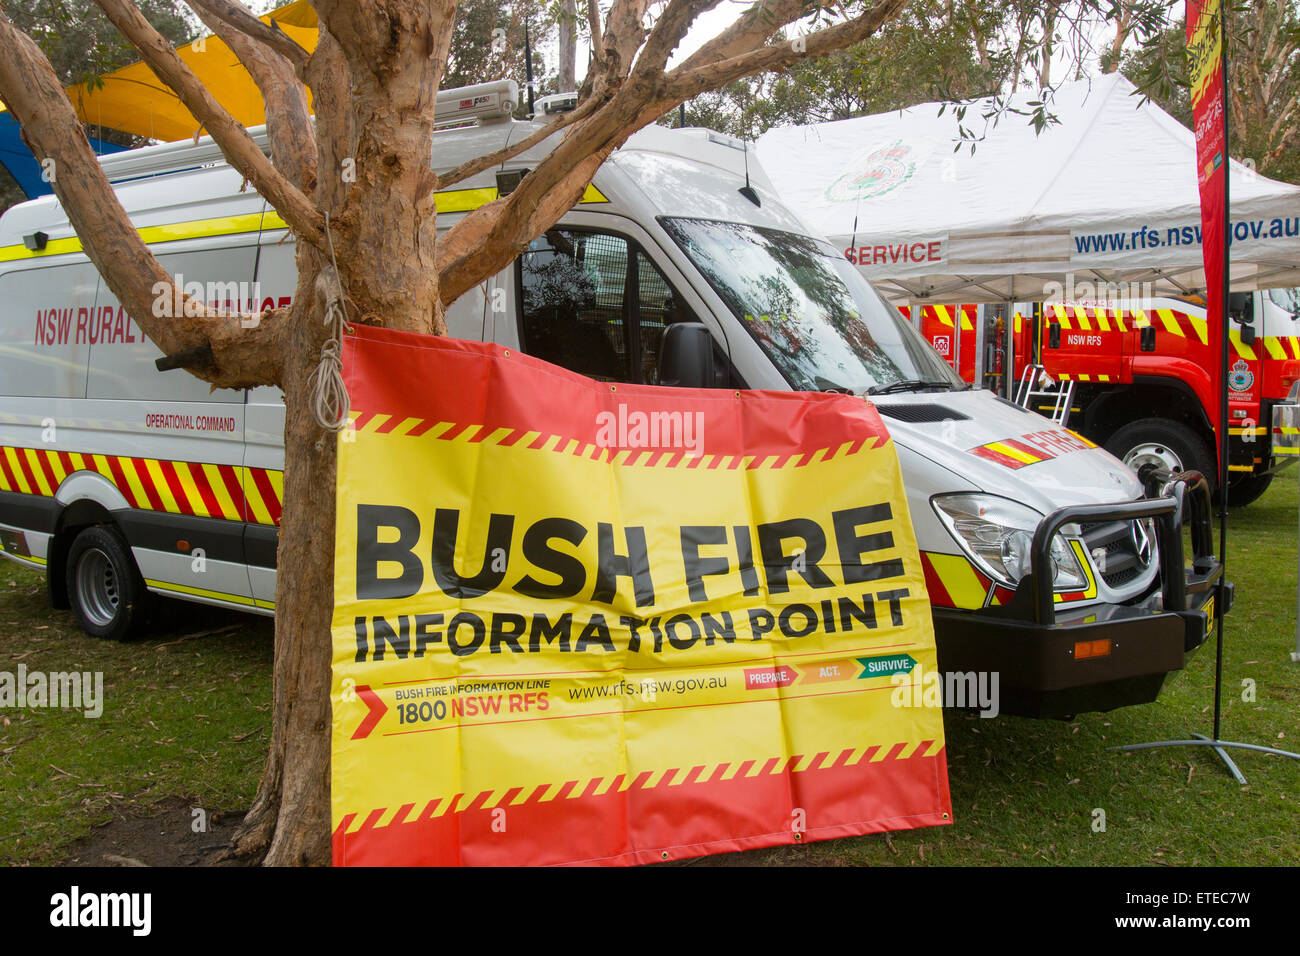 Nsw Rural Fire Service Stock Photos & Nsw Rural Fire Service